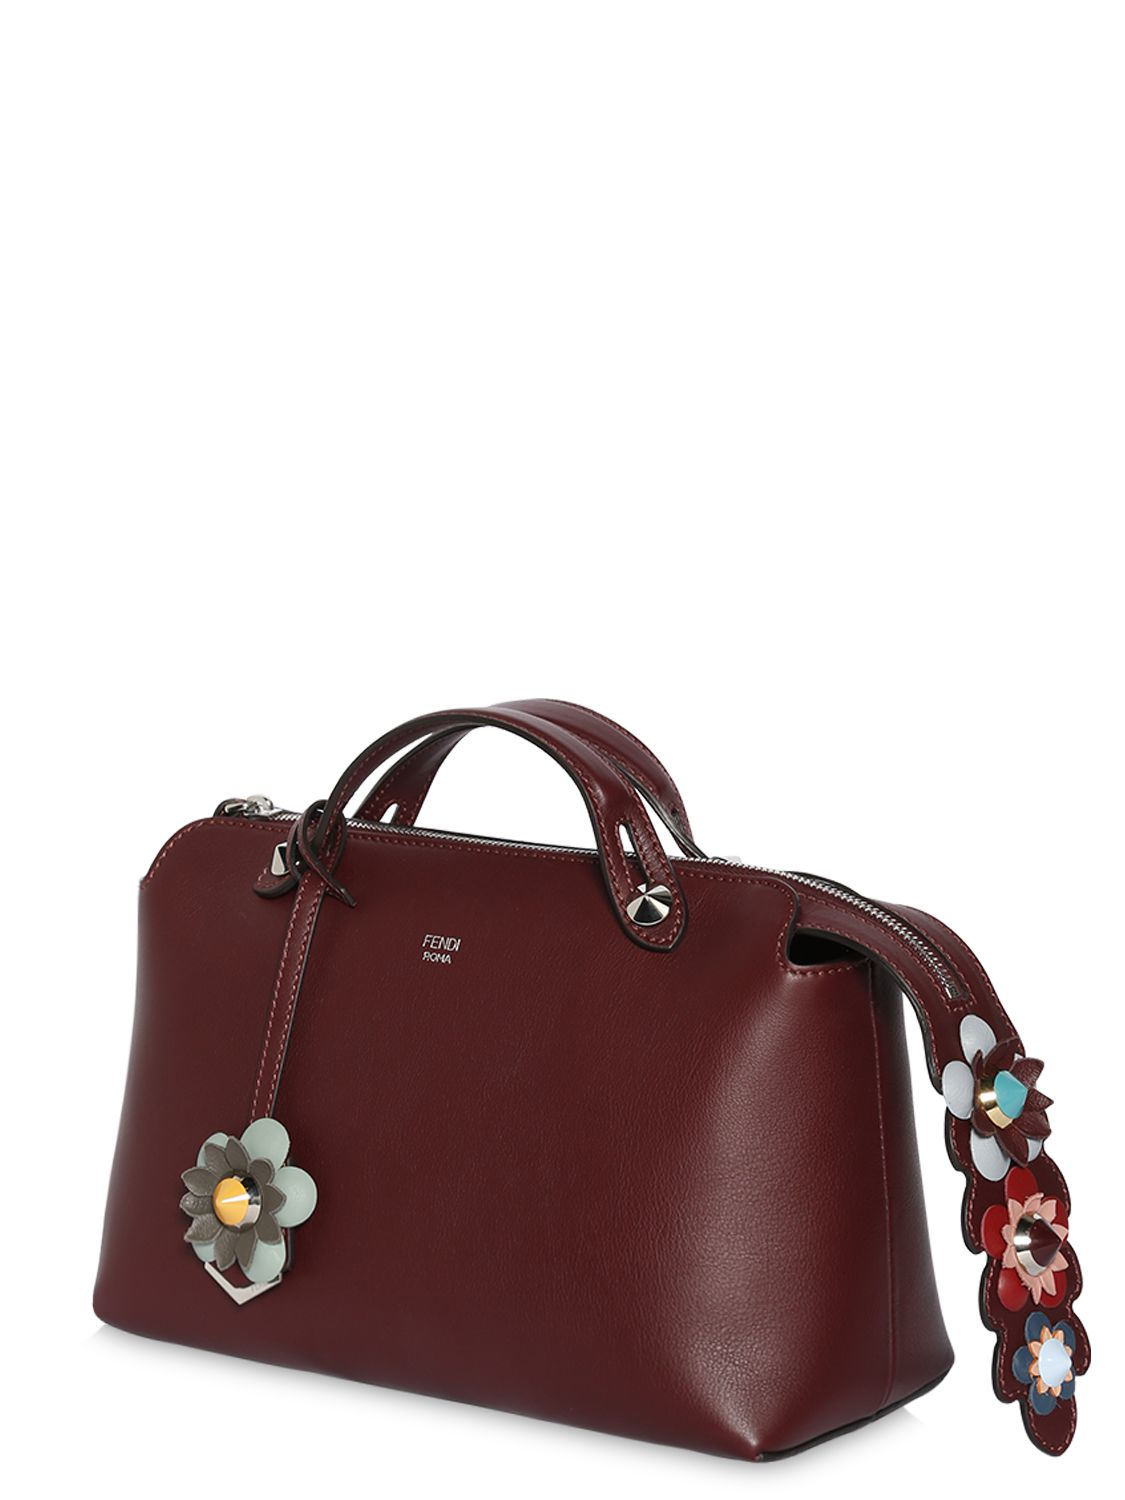 ae4c7d20ebde Lyst - Fendi Small By The Way Bag W  Flower Details